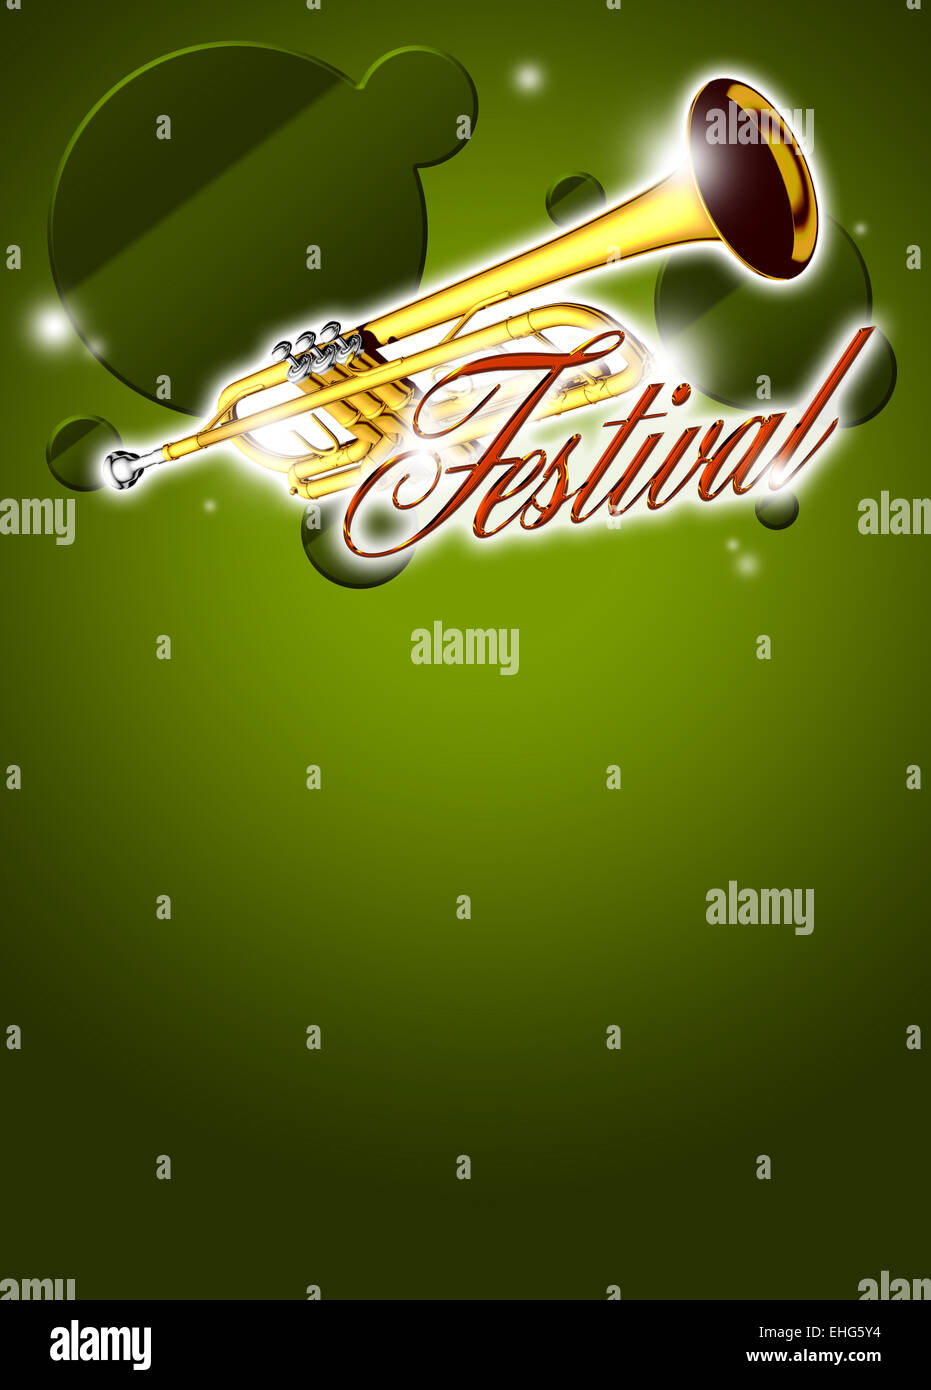 Abstract trumpet music invitation poster or flyer bacground with space - Stock Image